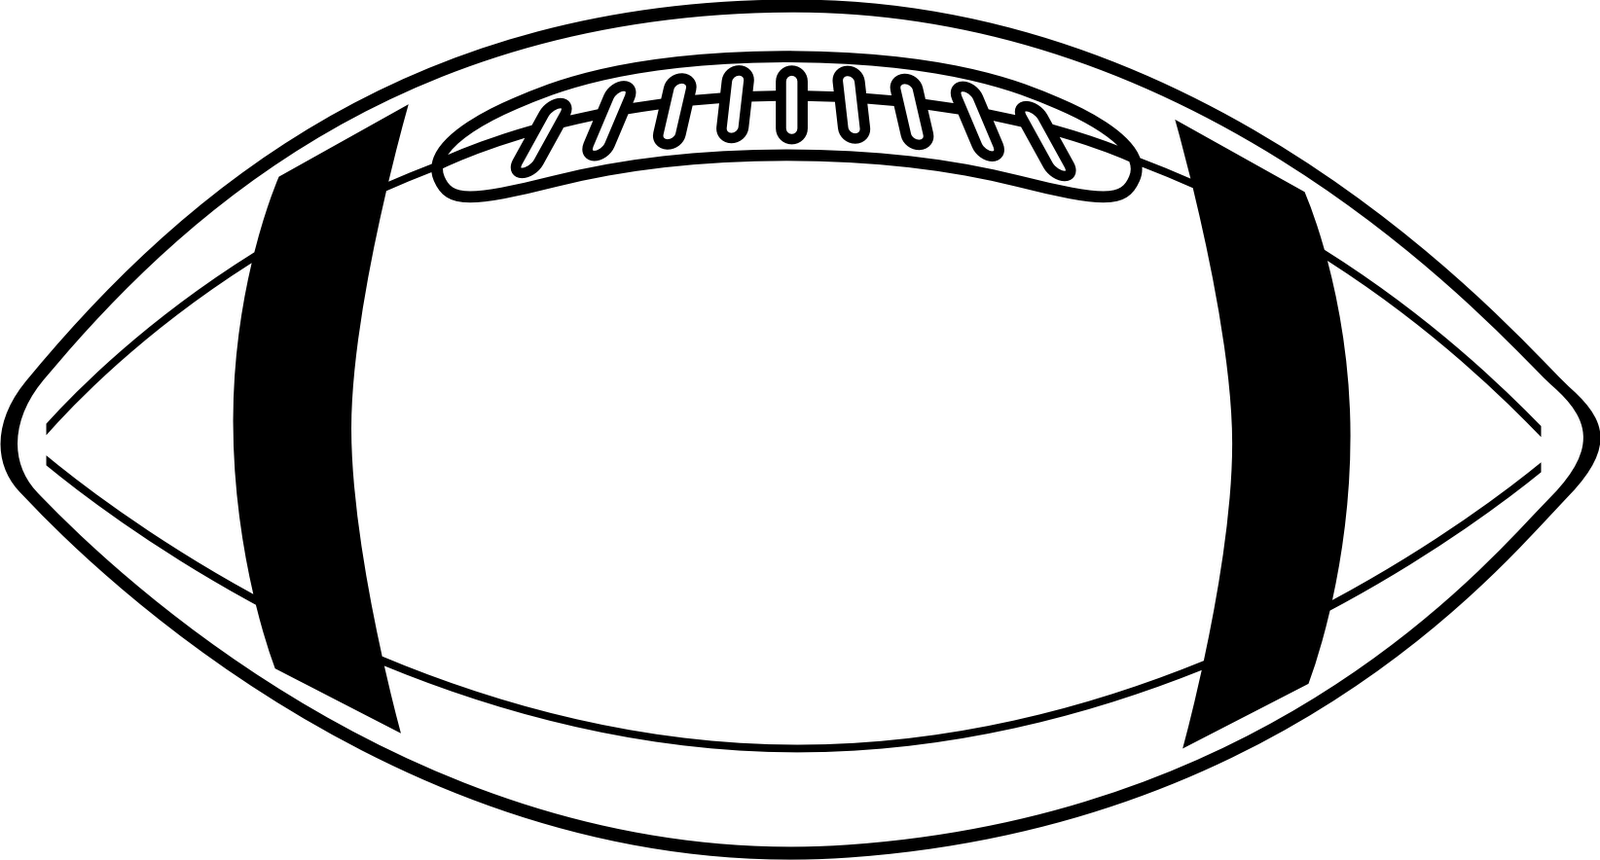 Football helmet clip art free - Clip Art Football